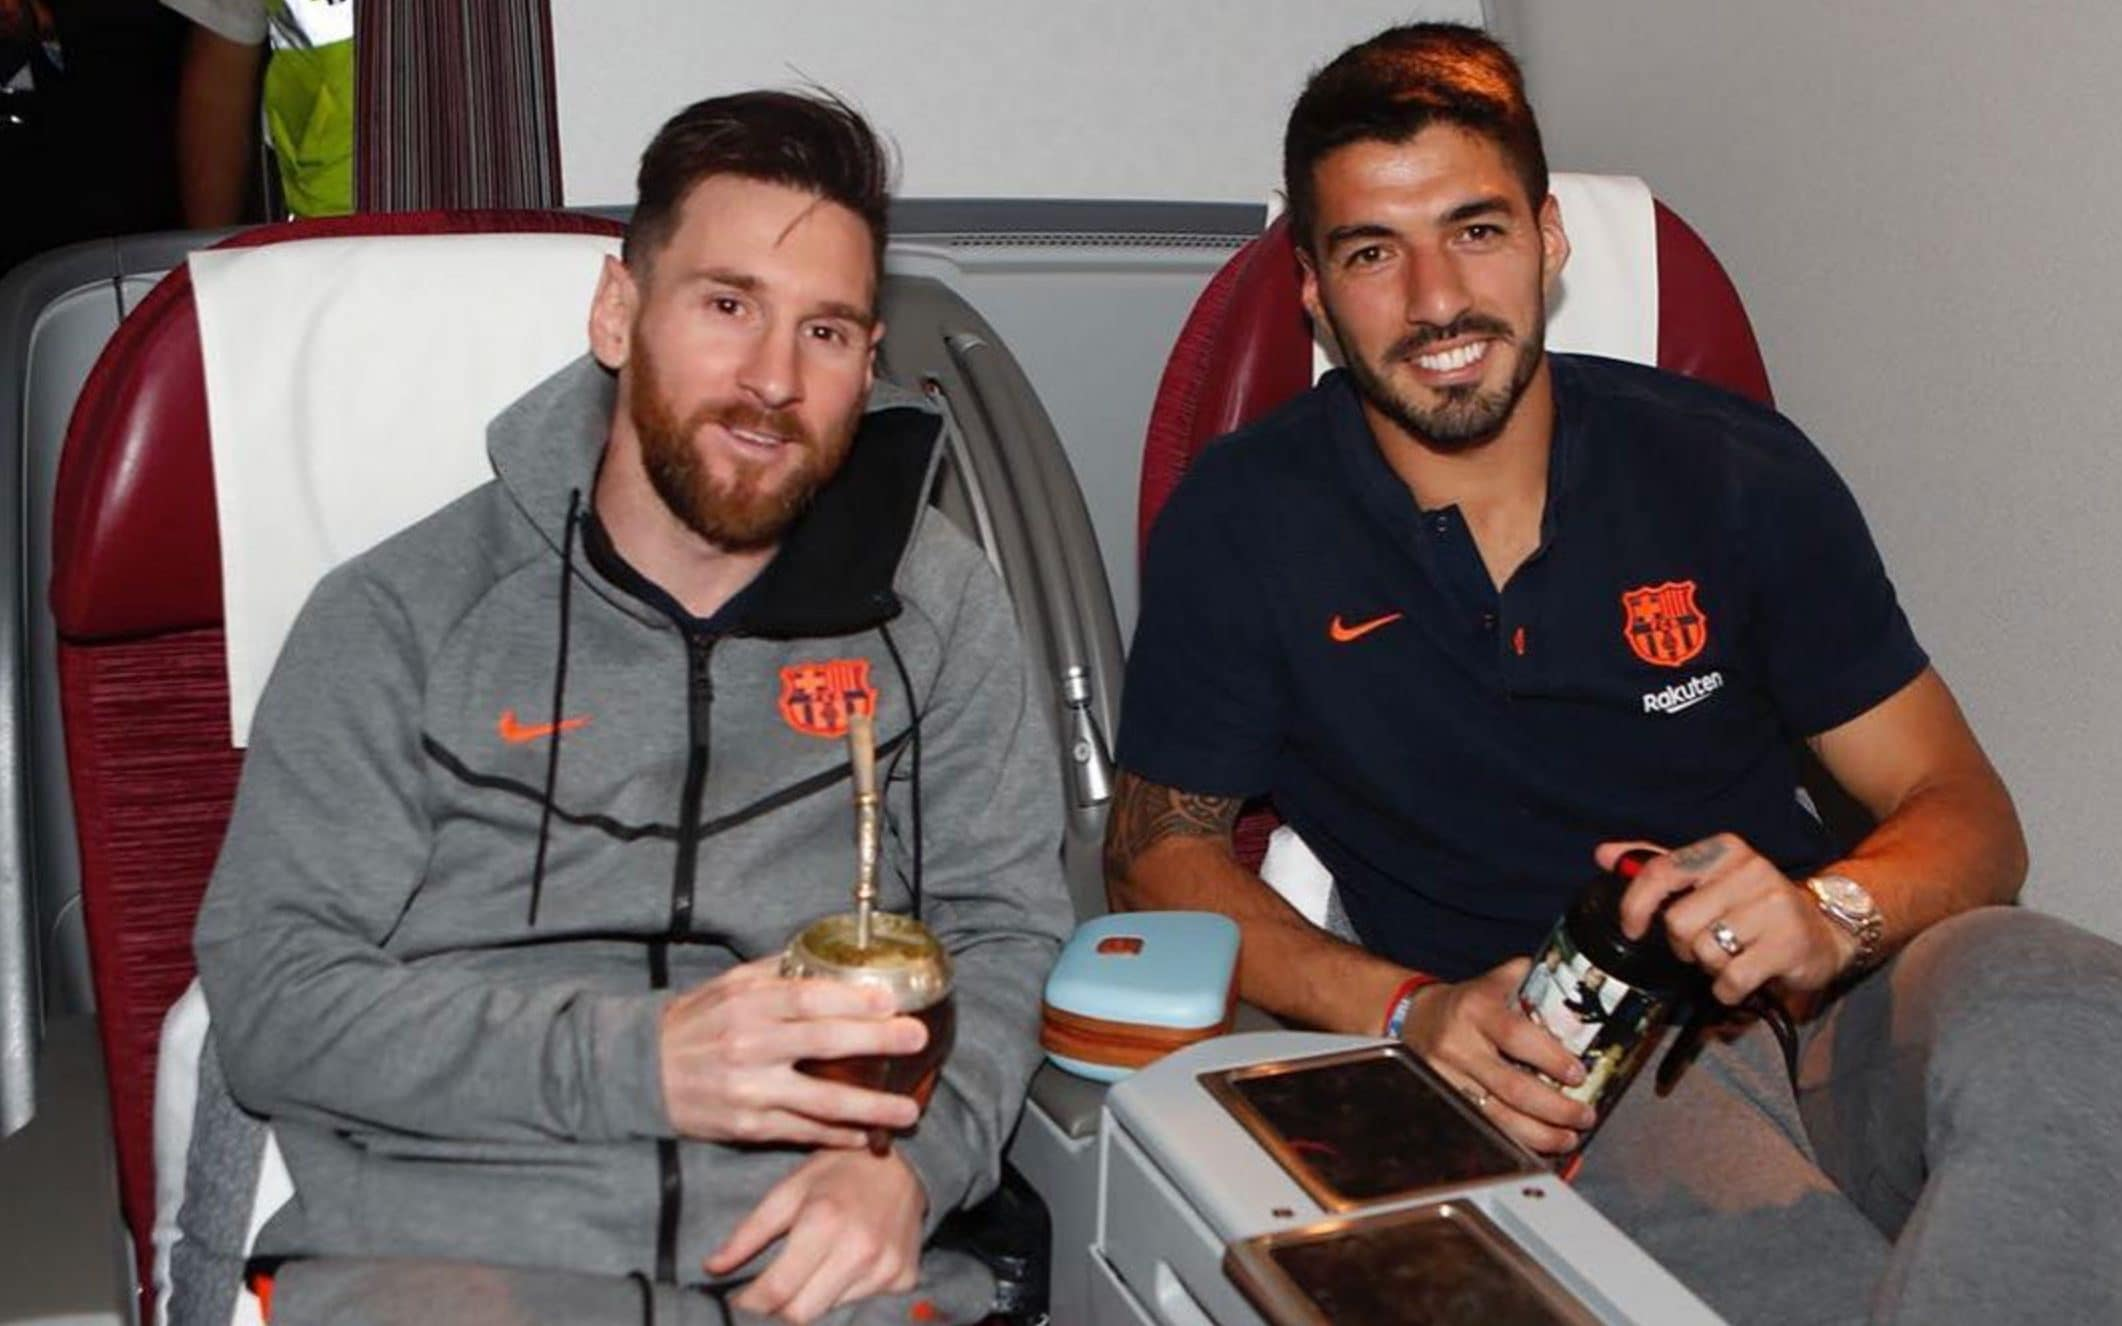 """Luis Suarez on Lionel Messi's contract leak: """"I don't understand how people have so much evil in them"""""""